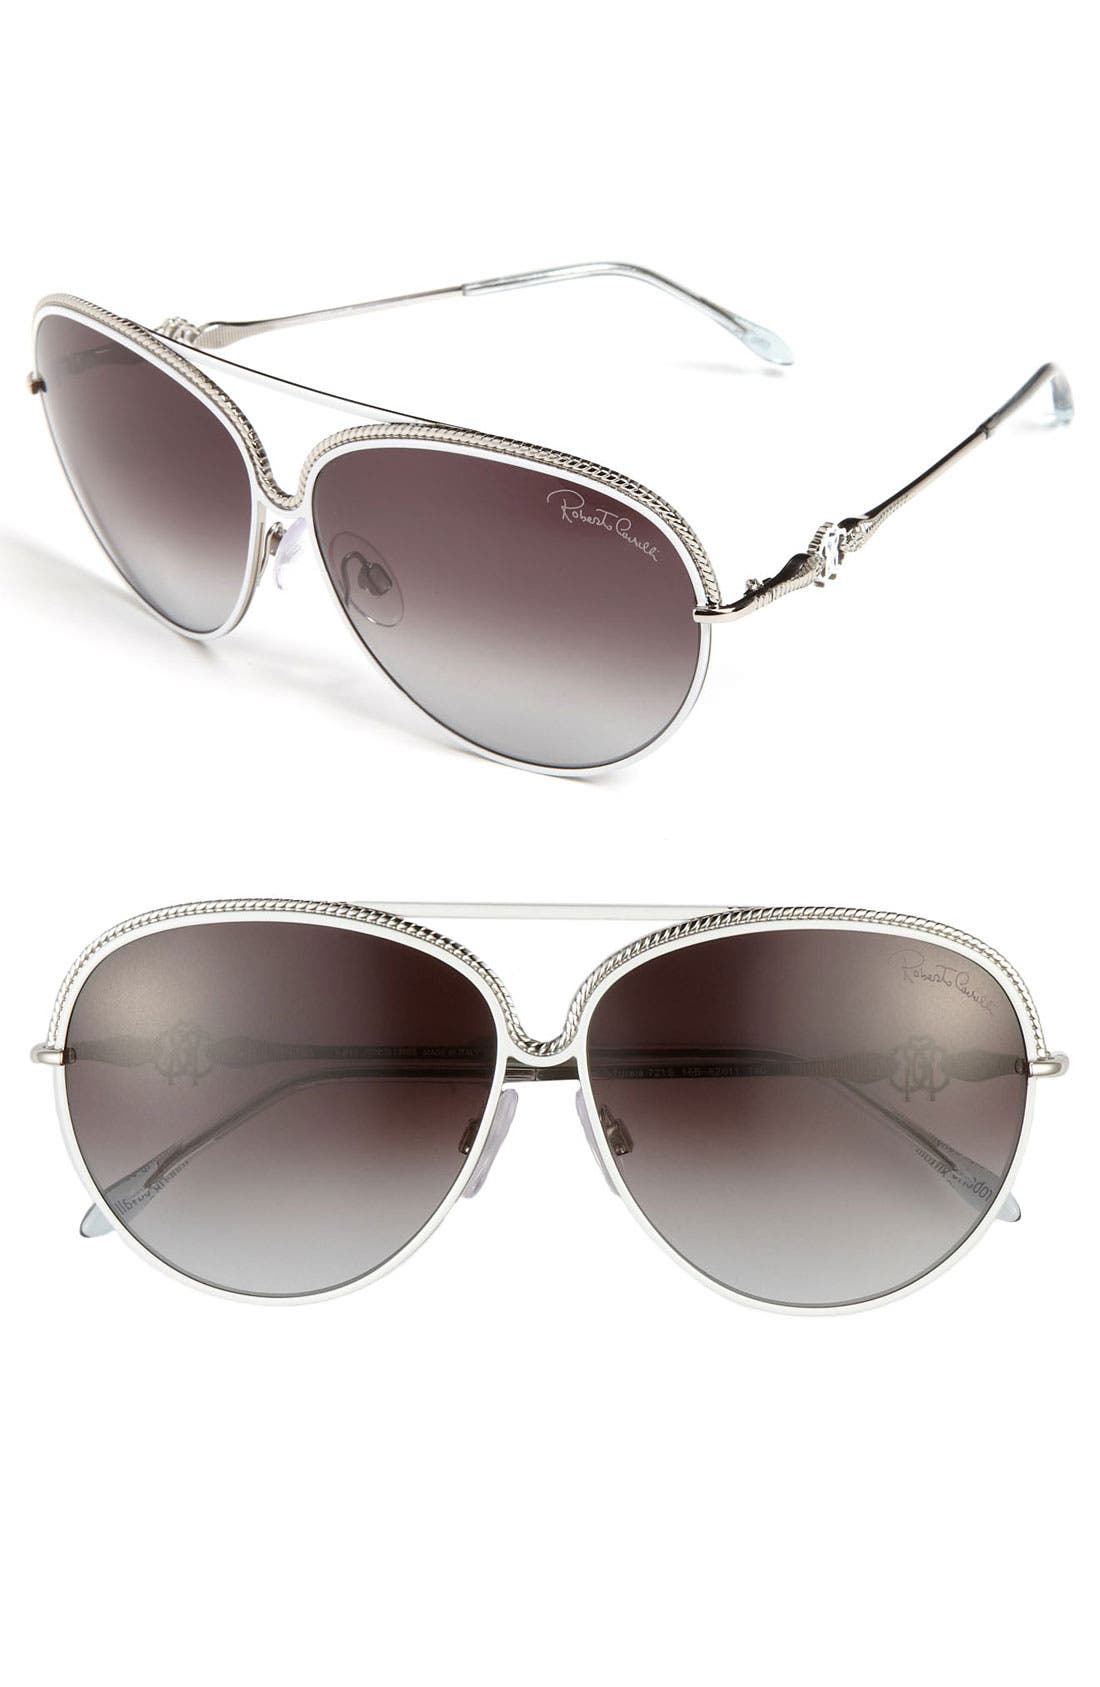 Main Image - Roberto Cavalli 62mm Aviator Sunglasses